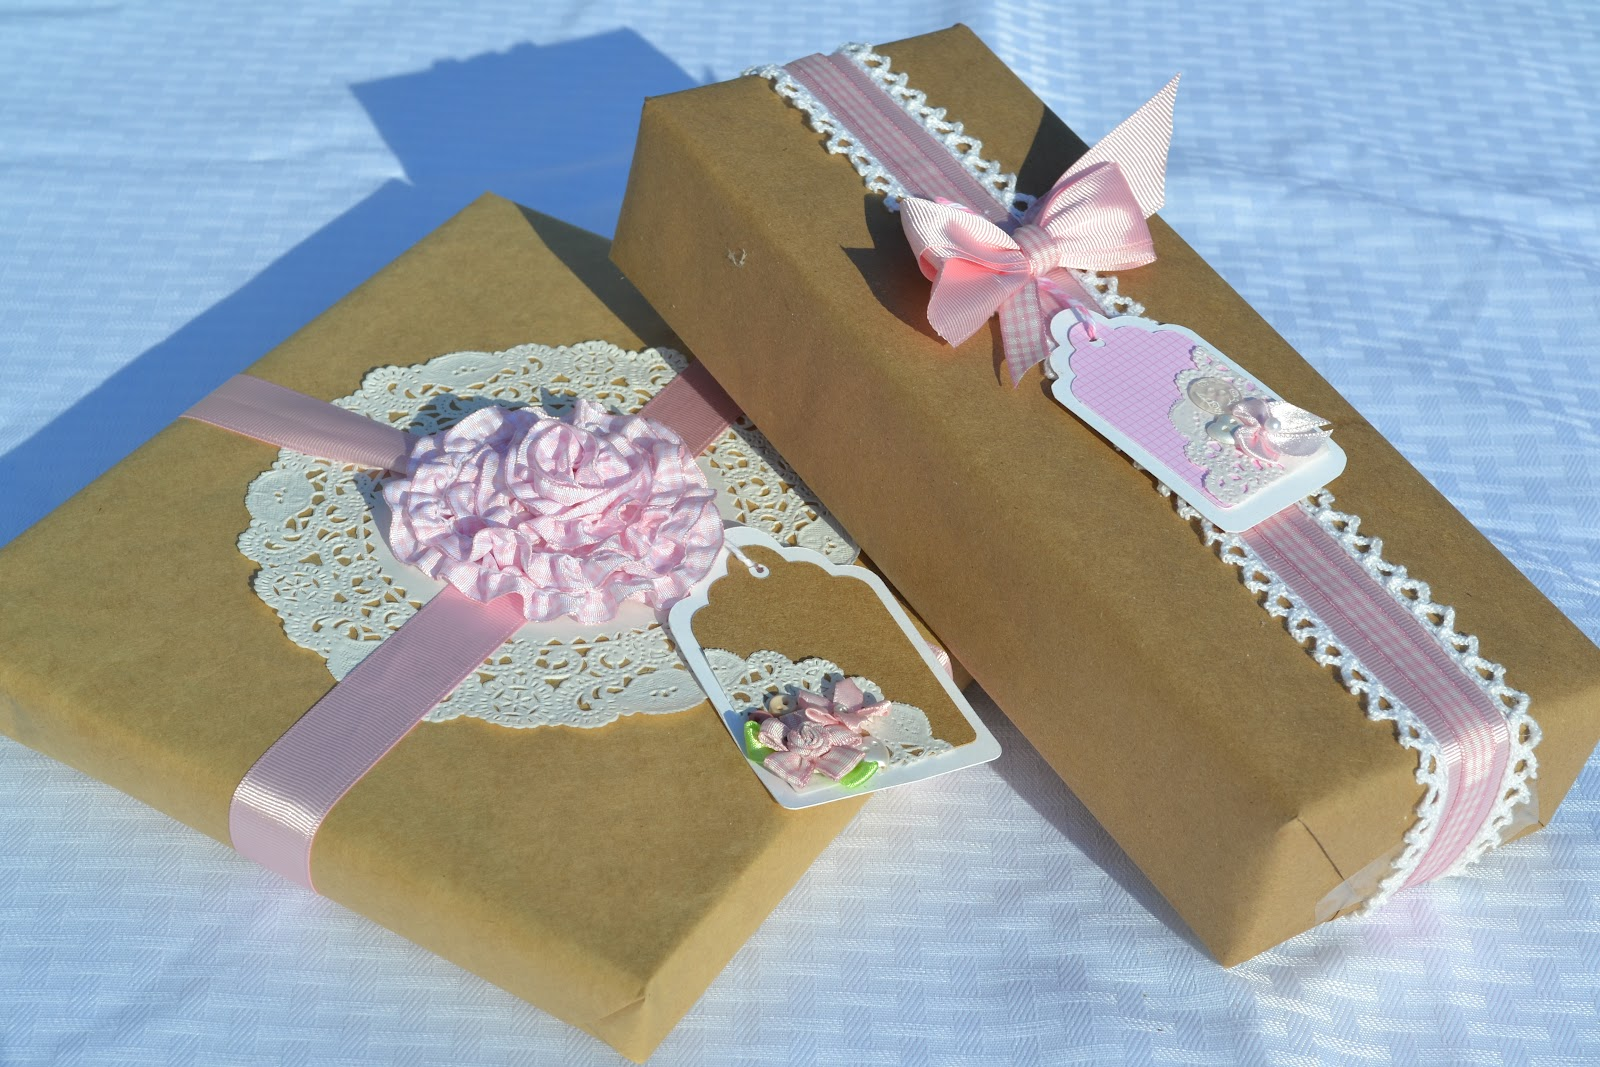 f1e2b930f133 I had the pleasure of attending another baby shower this weekend. I am in  love with wrapping in craft paper and using the bows, ribbons and tags to  express ...